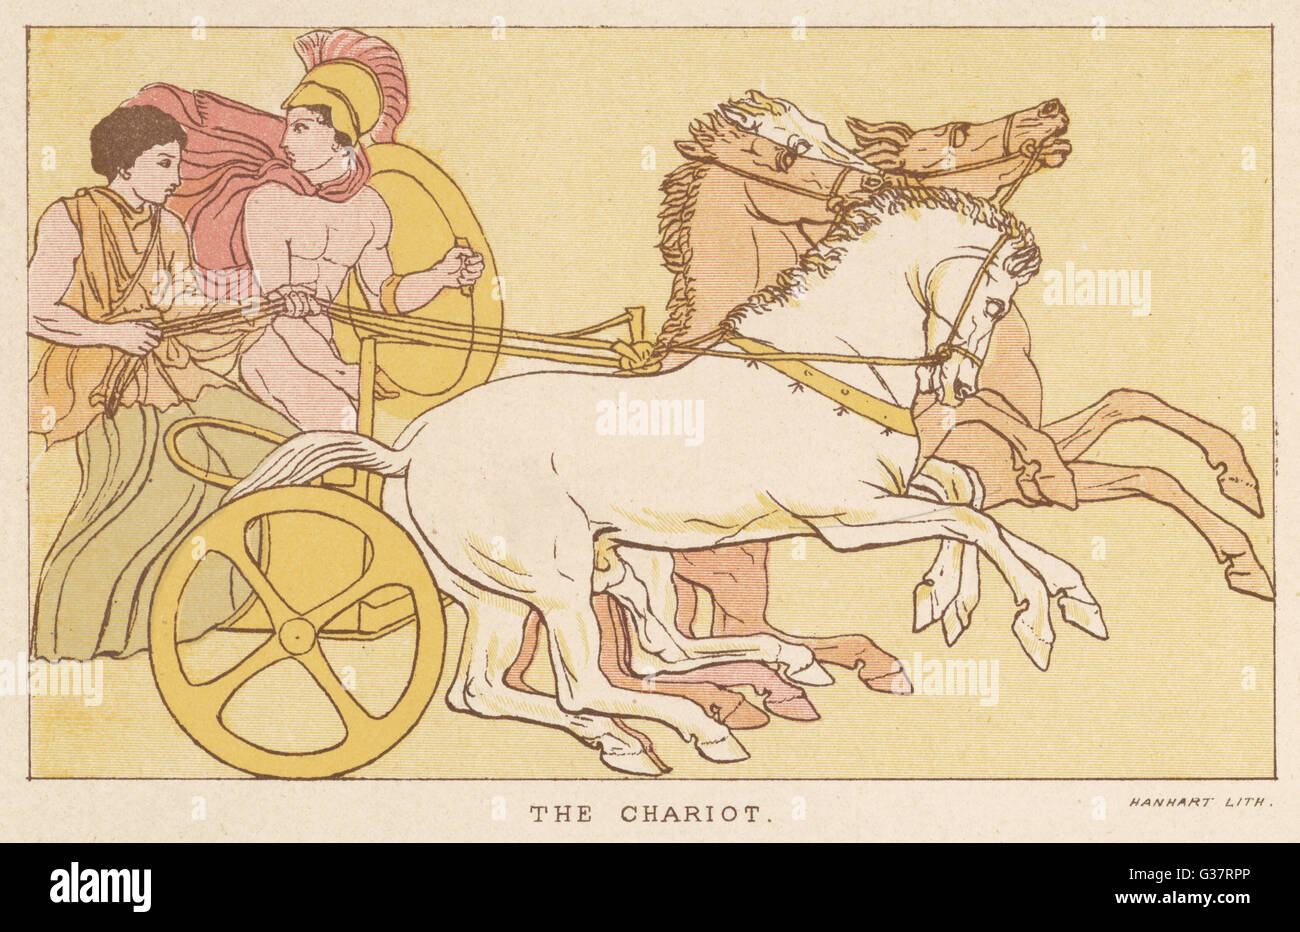 Greek warriors in a chariot          Date: 5th century BC - Stock Image